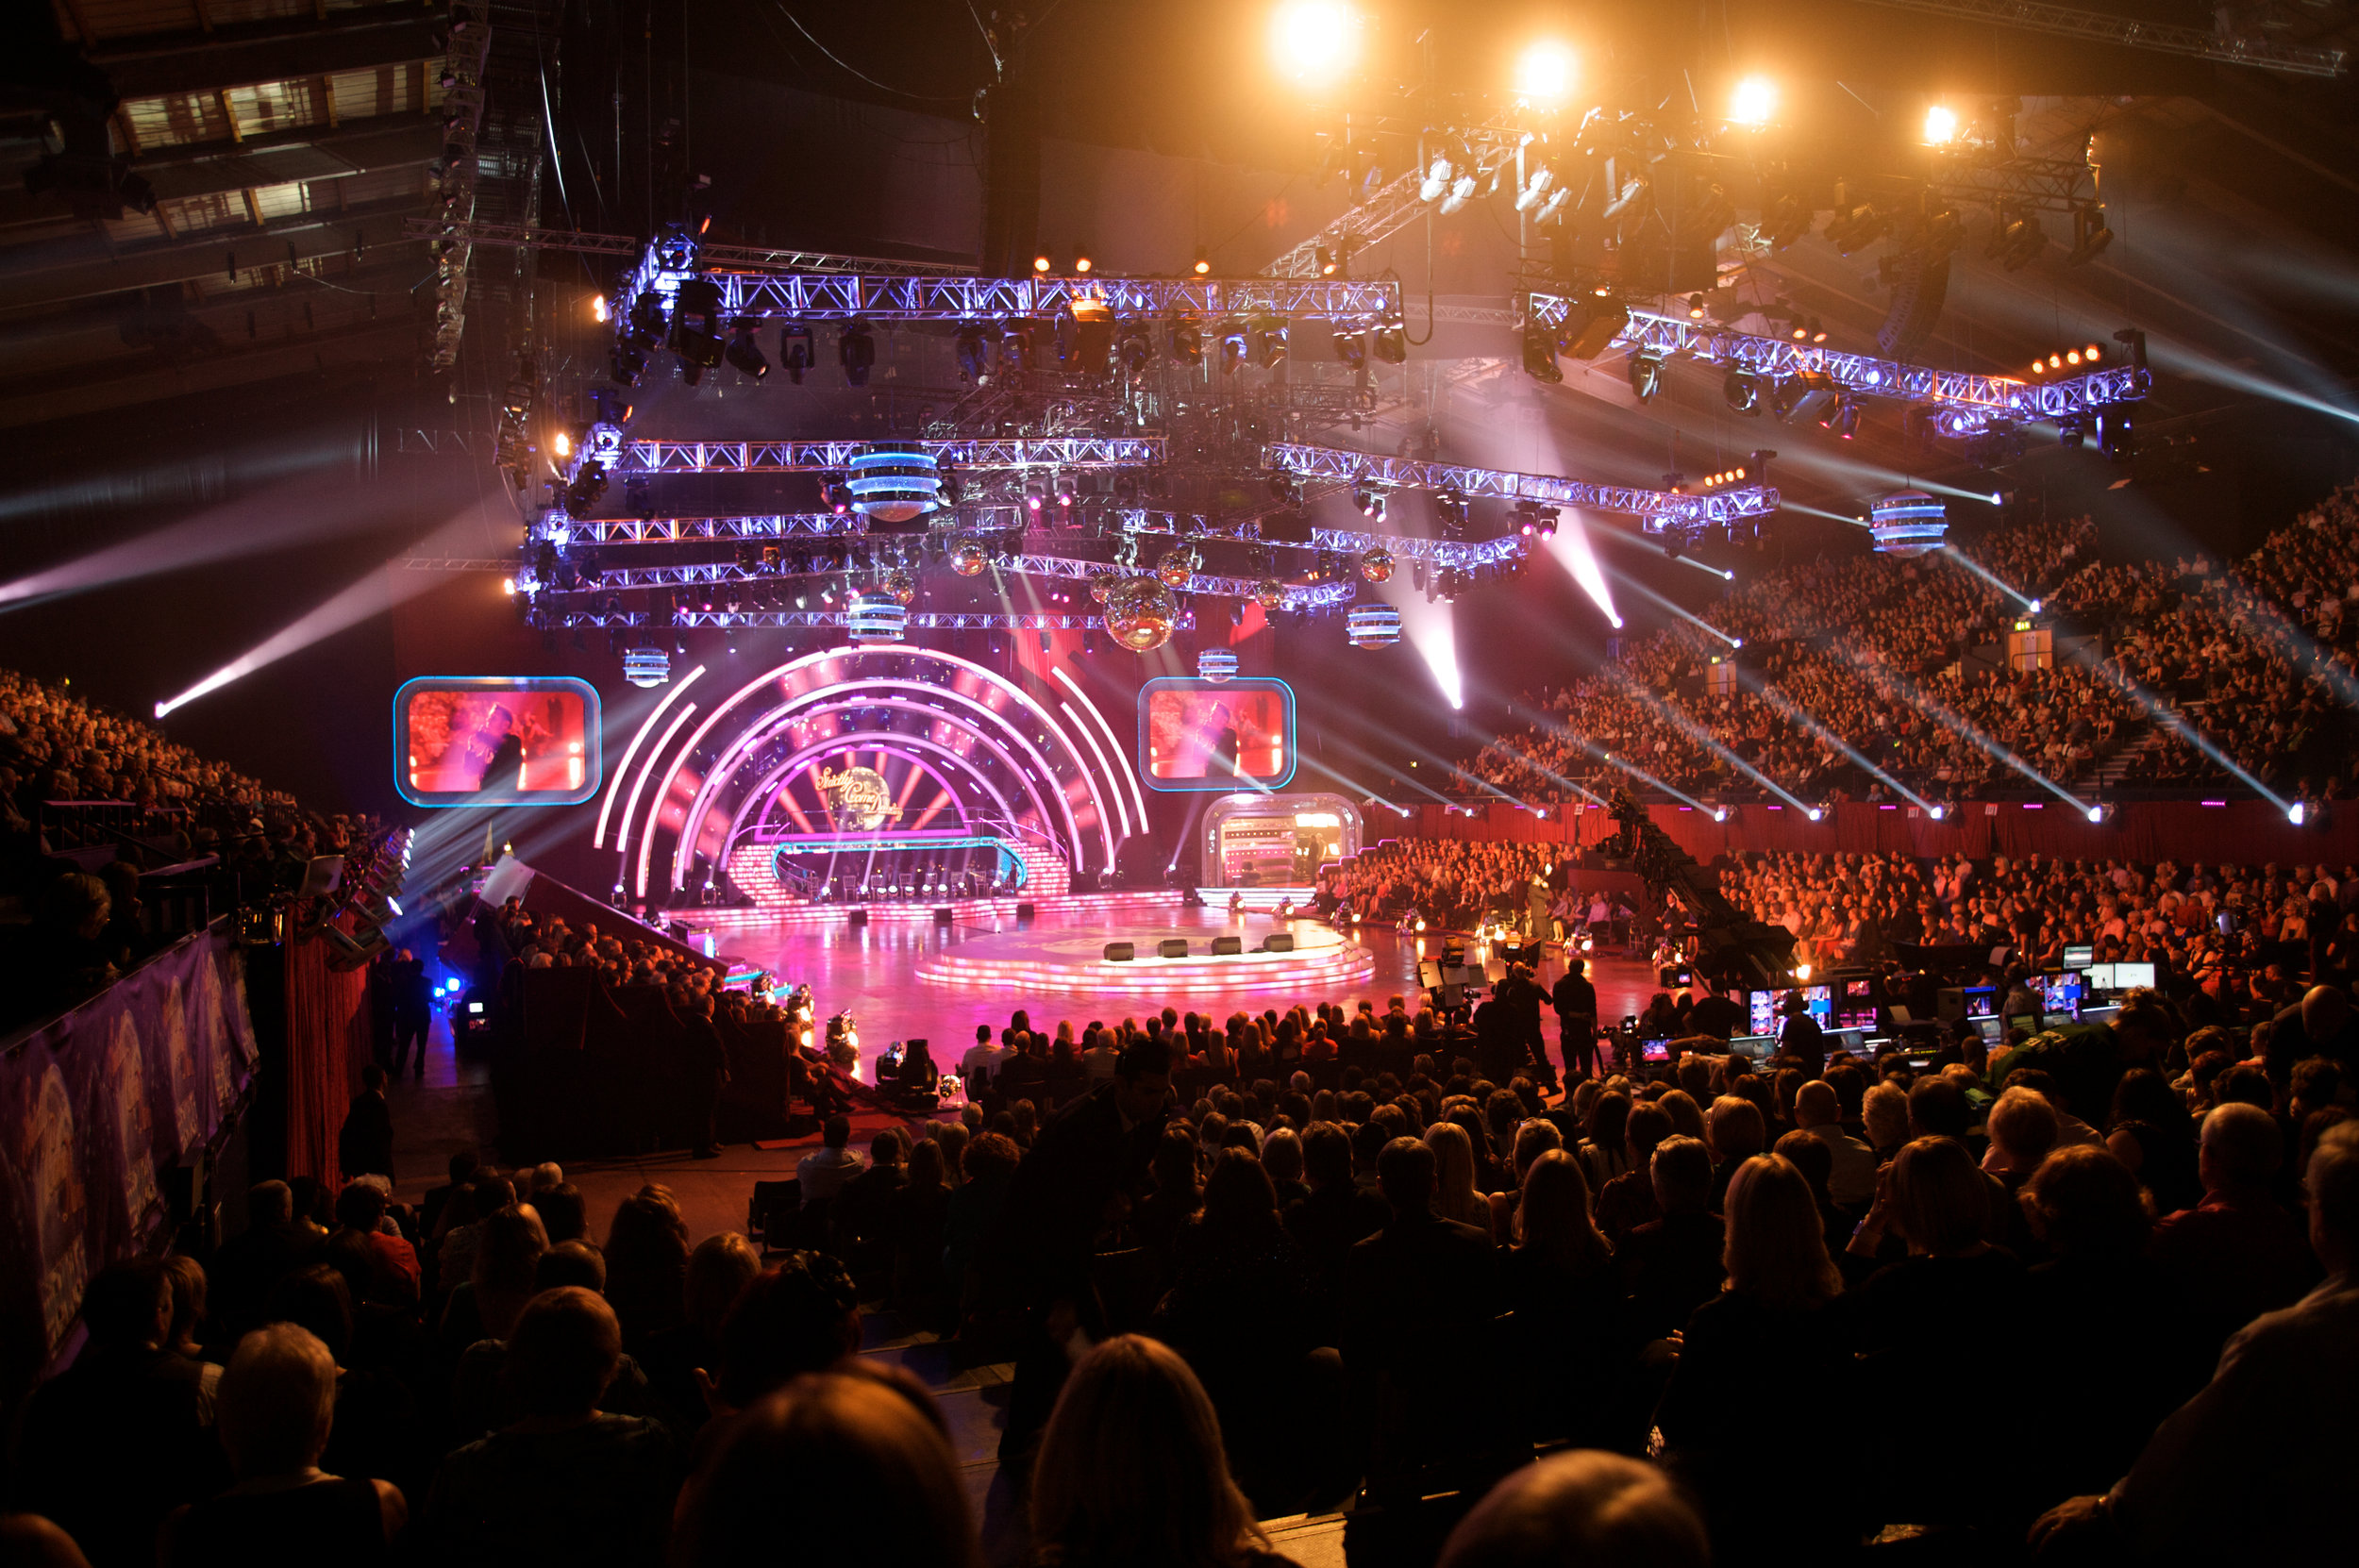 strictlywembley2.jpg